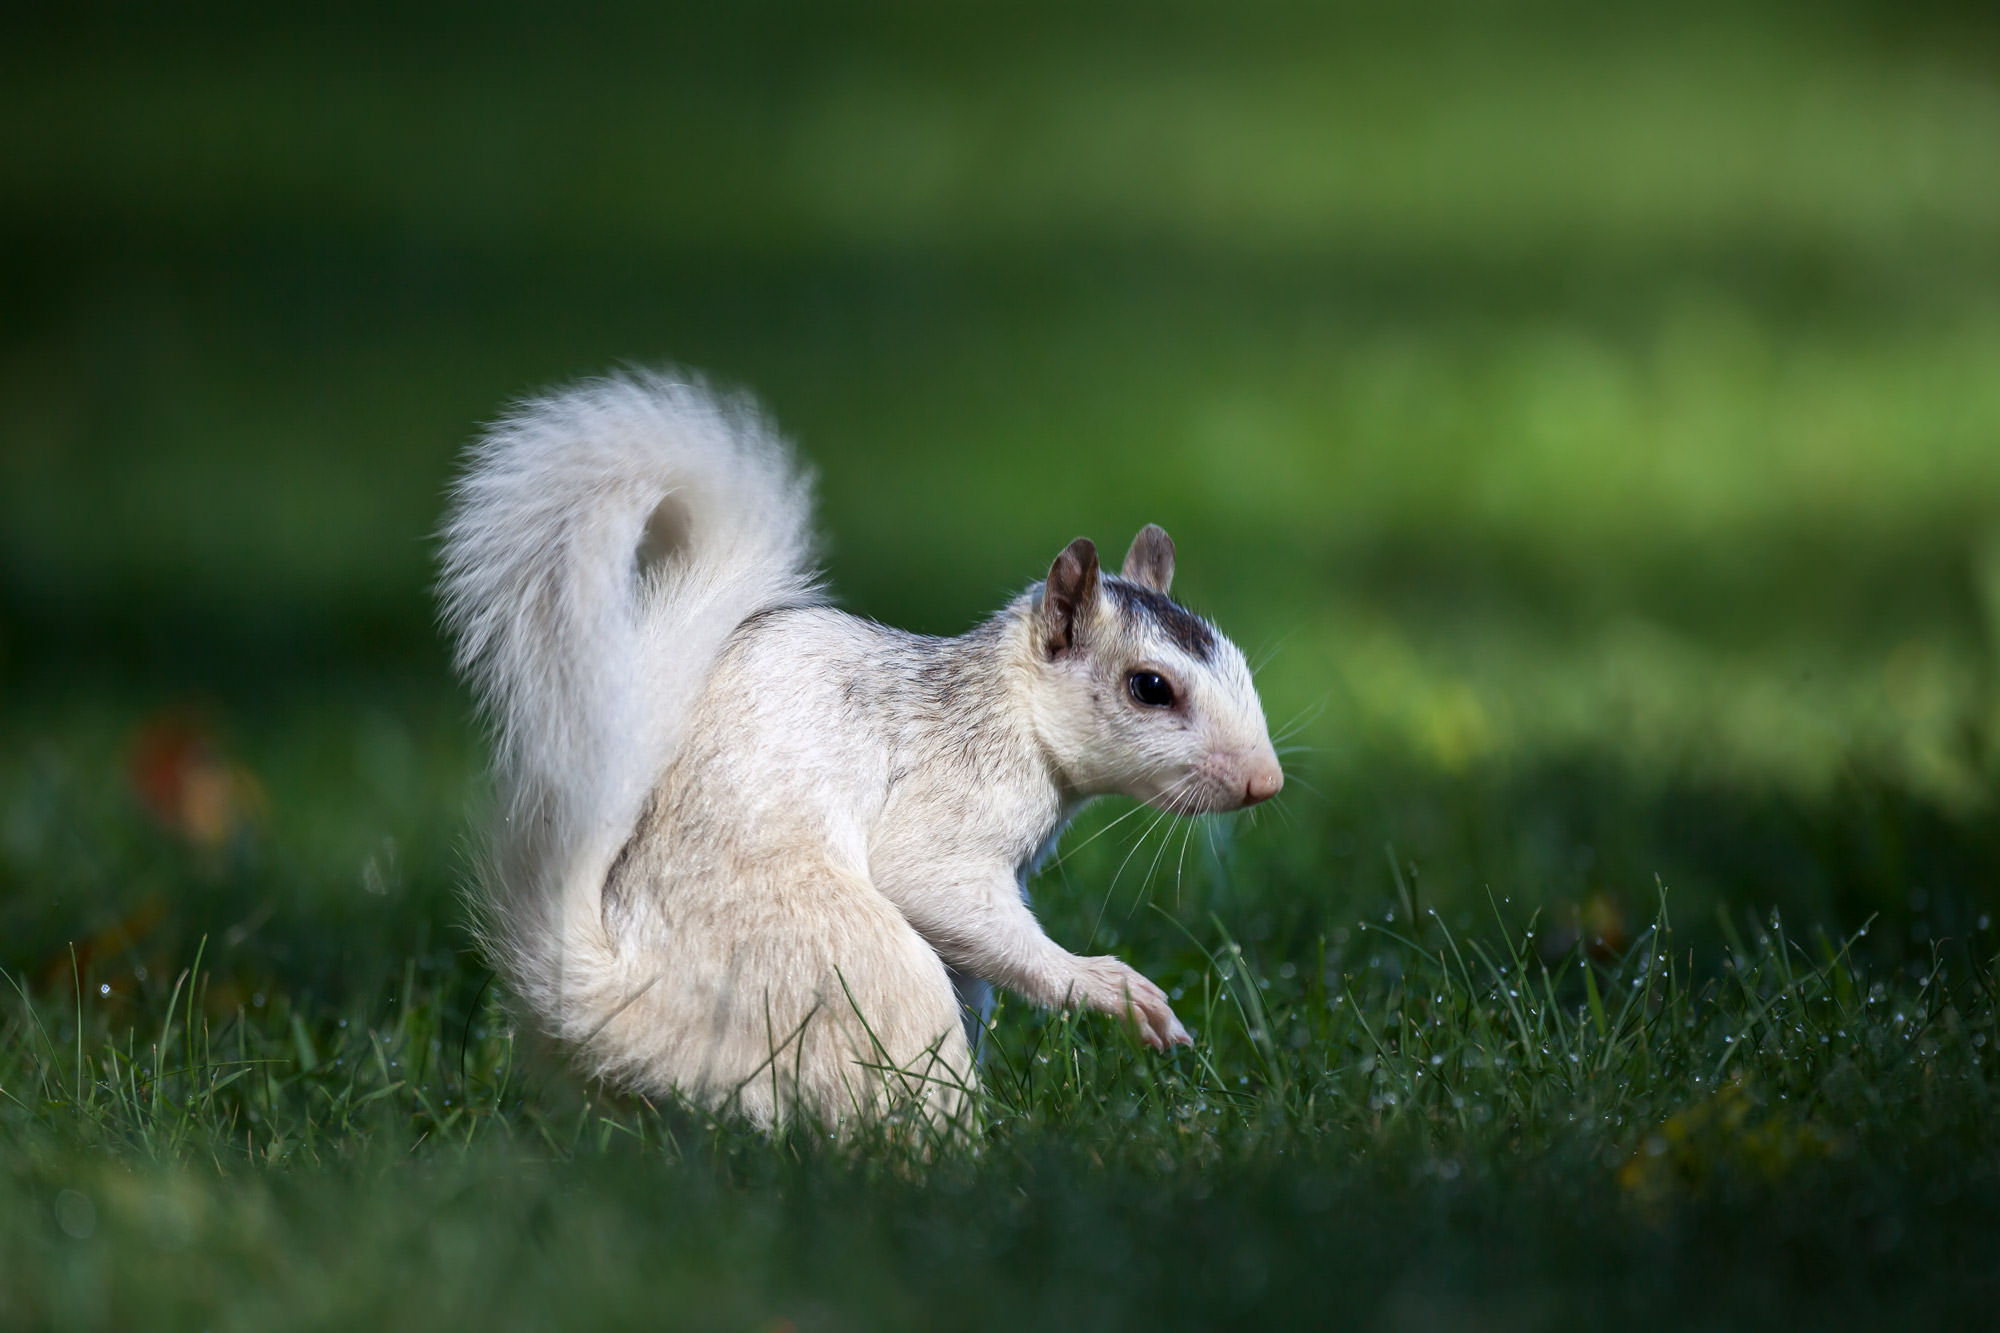 White Squirrel Fine Art Photography A Limited Edition photograph of a White Squirrel with a big fluffy tail in the grass at the...